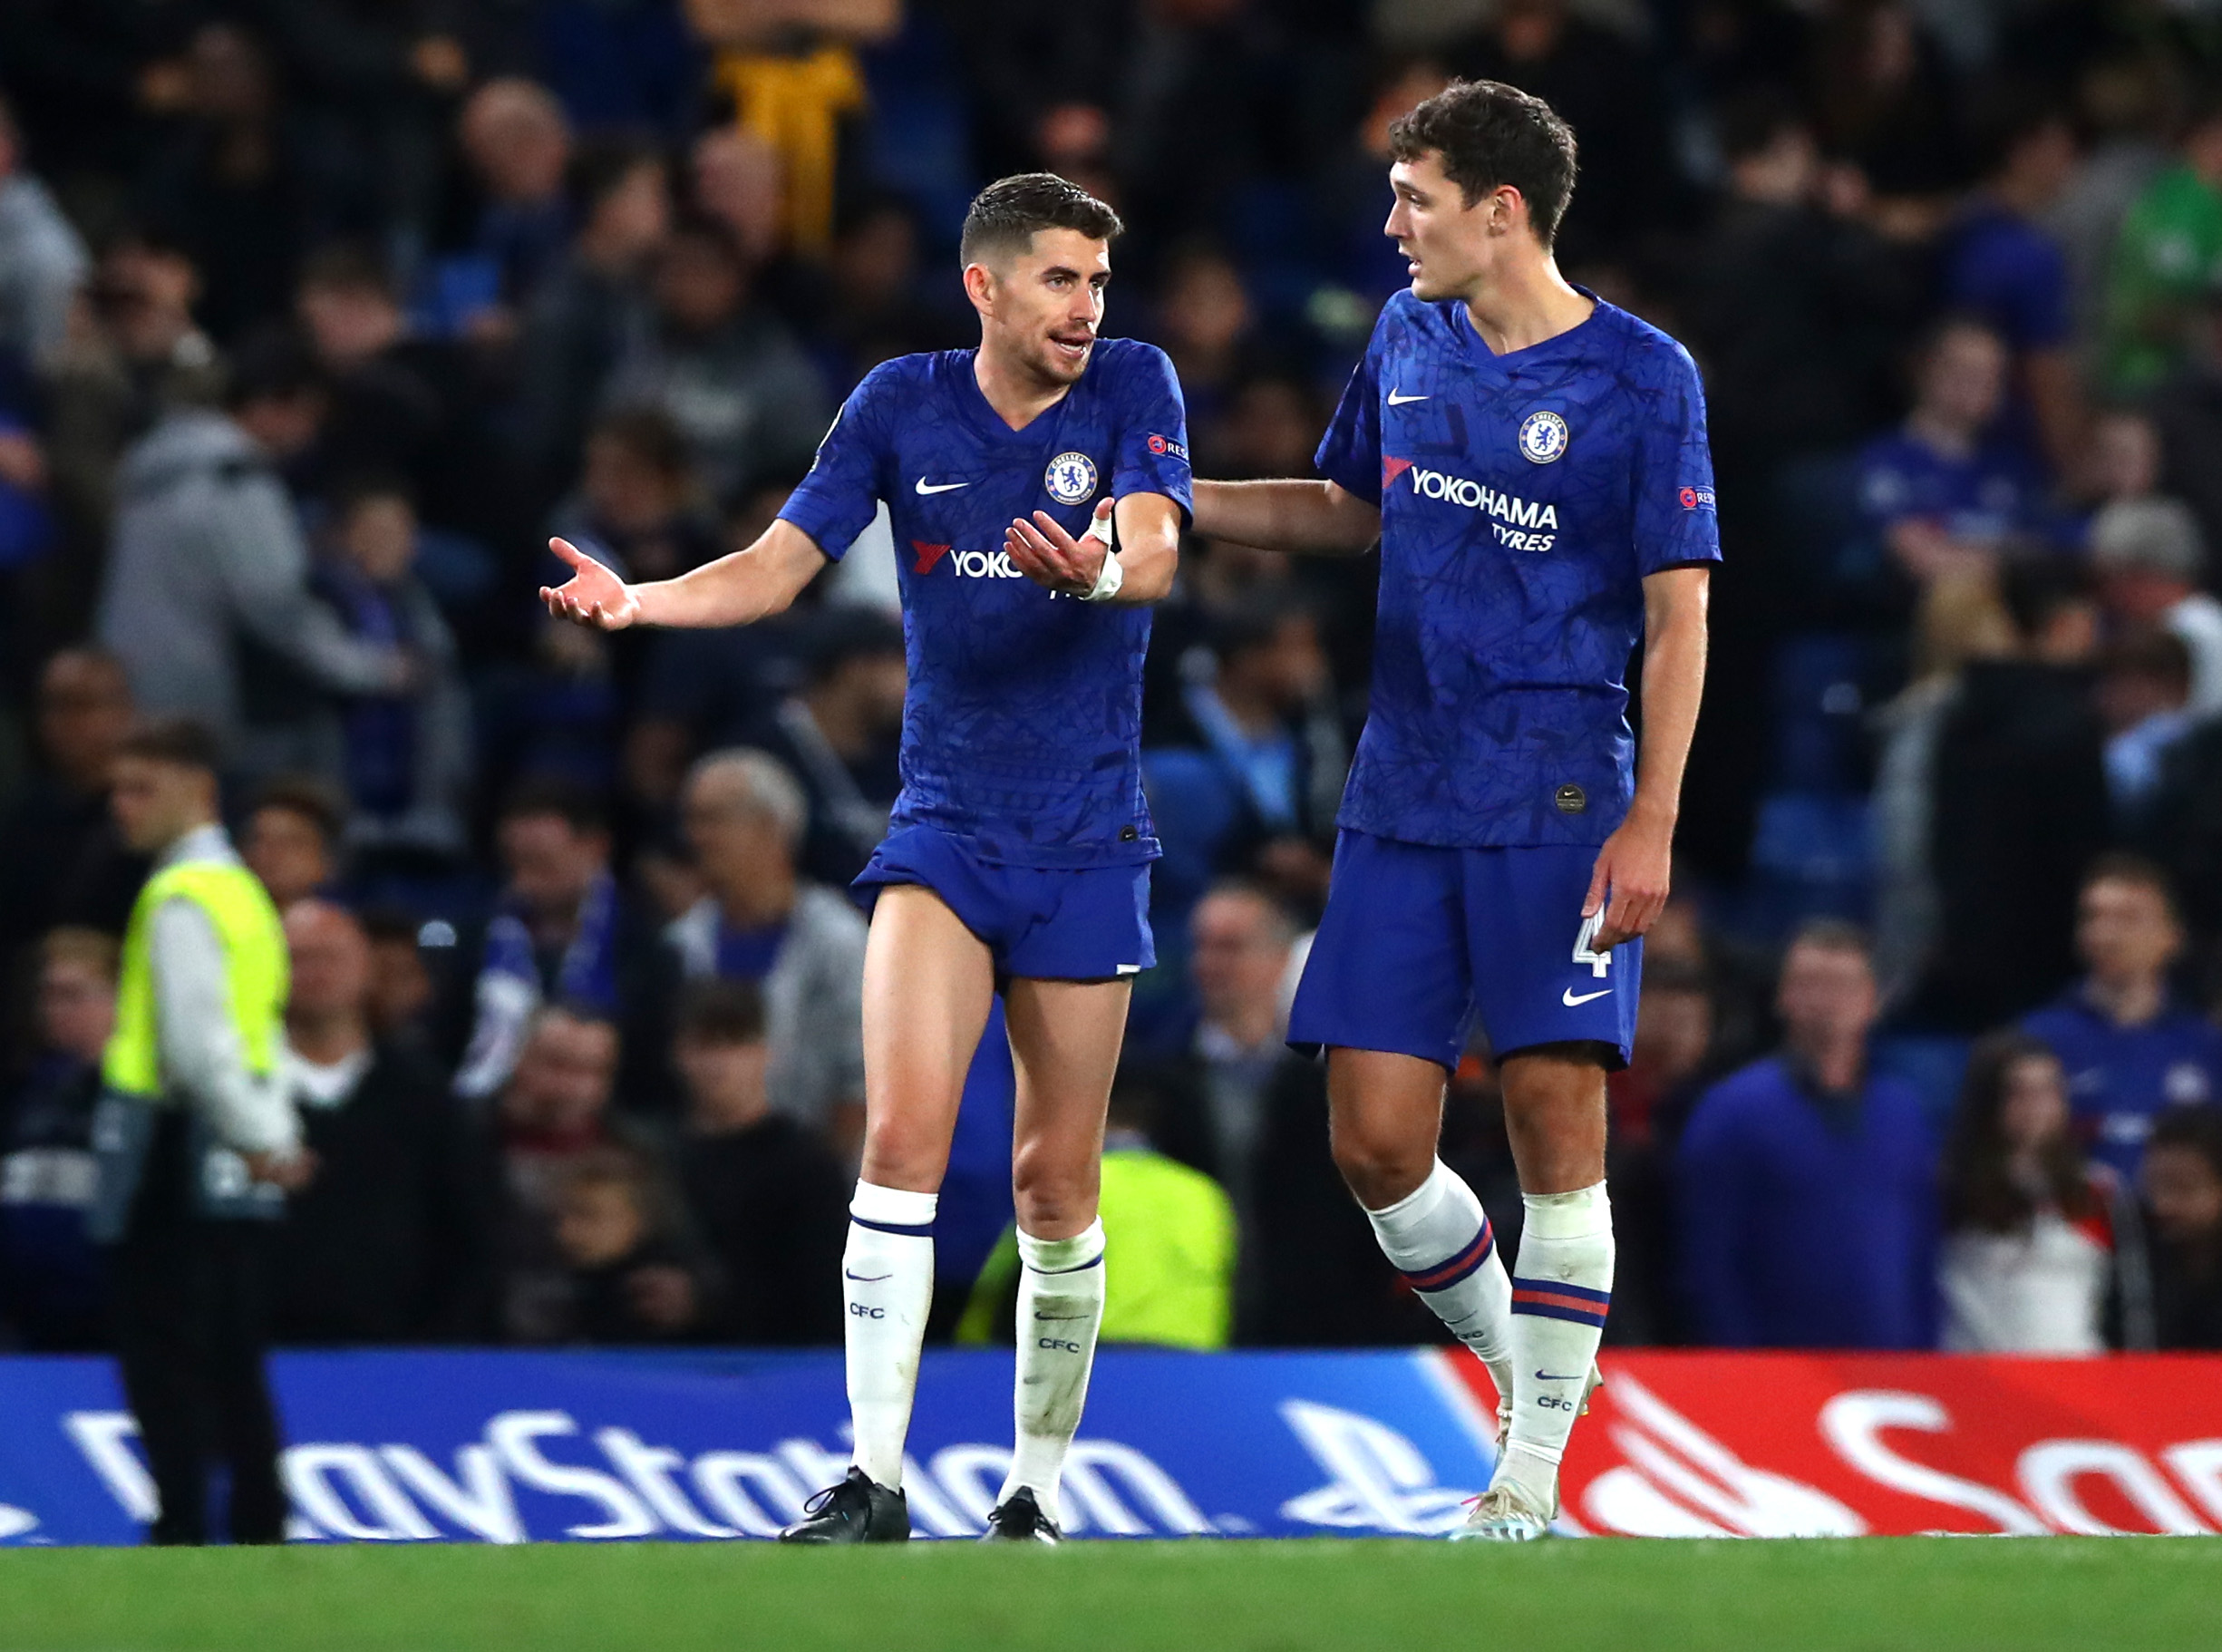 WAGNH Roundtable: Last week in the life of Chelsea fans